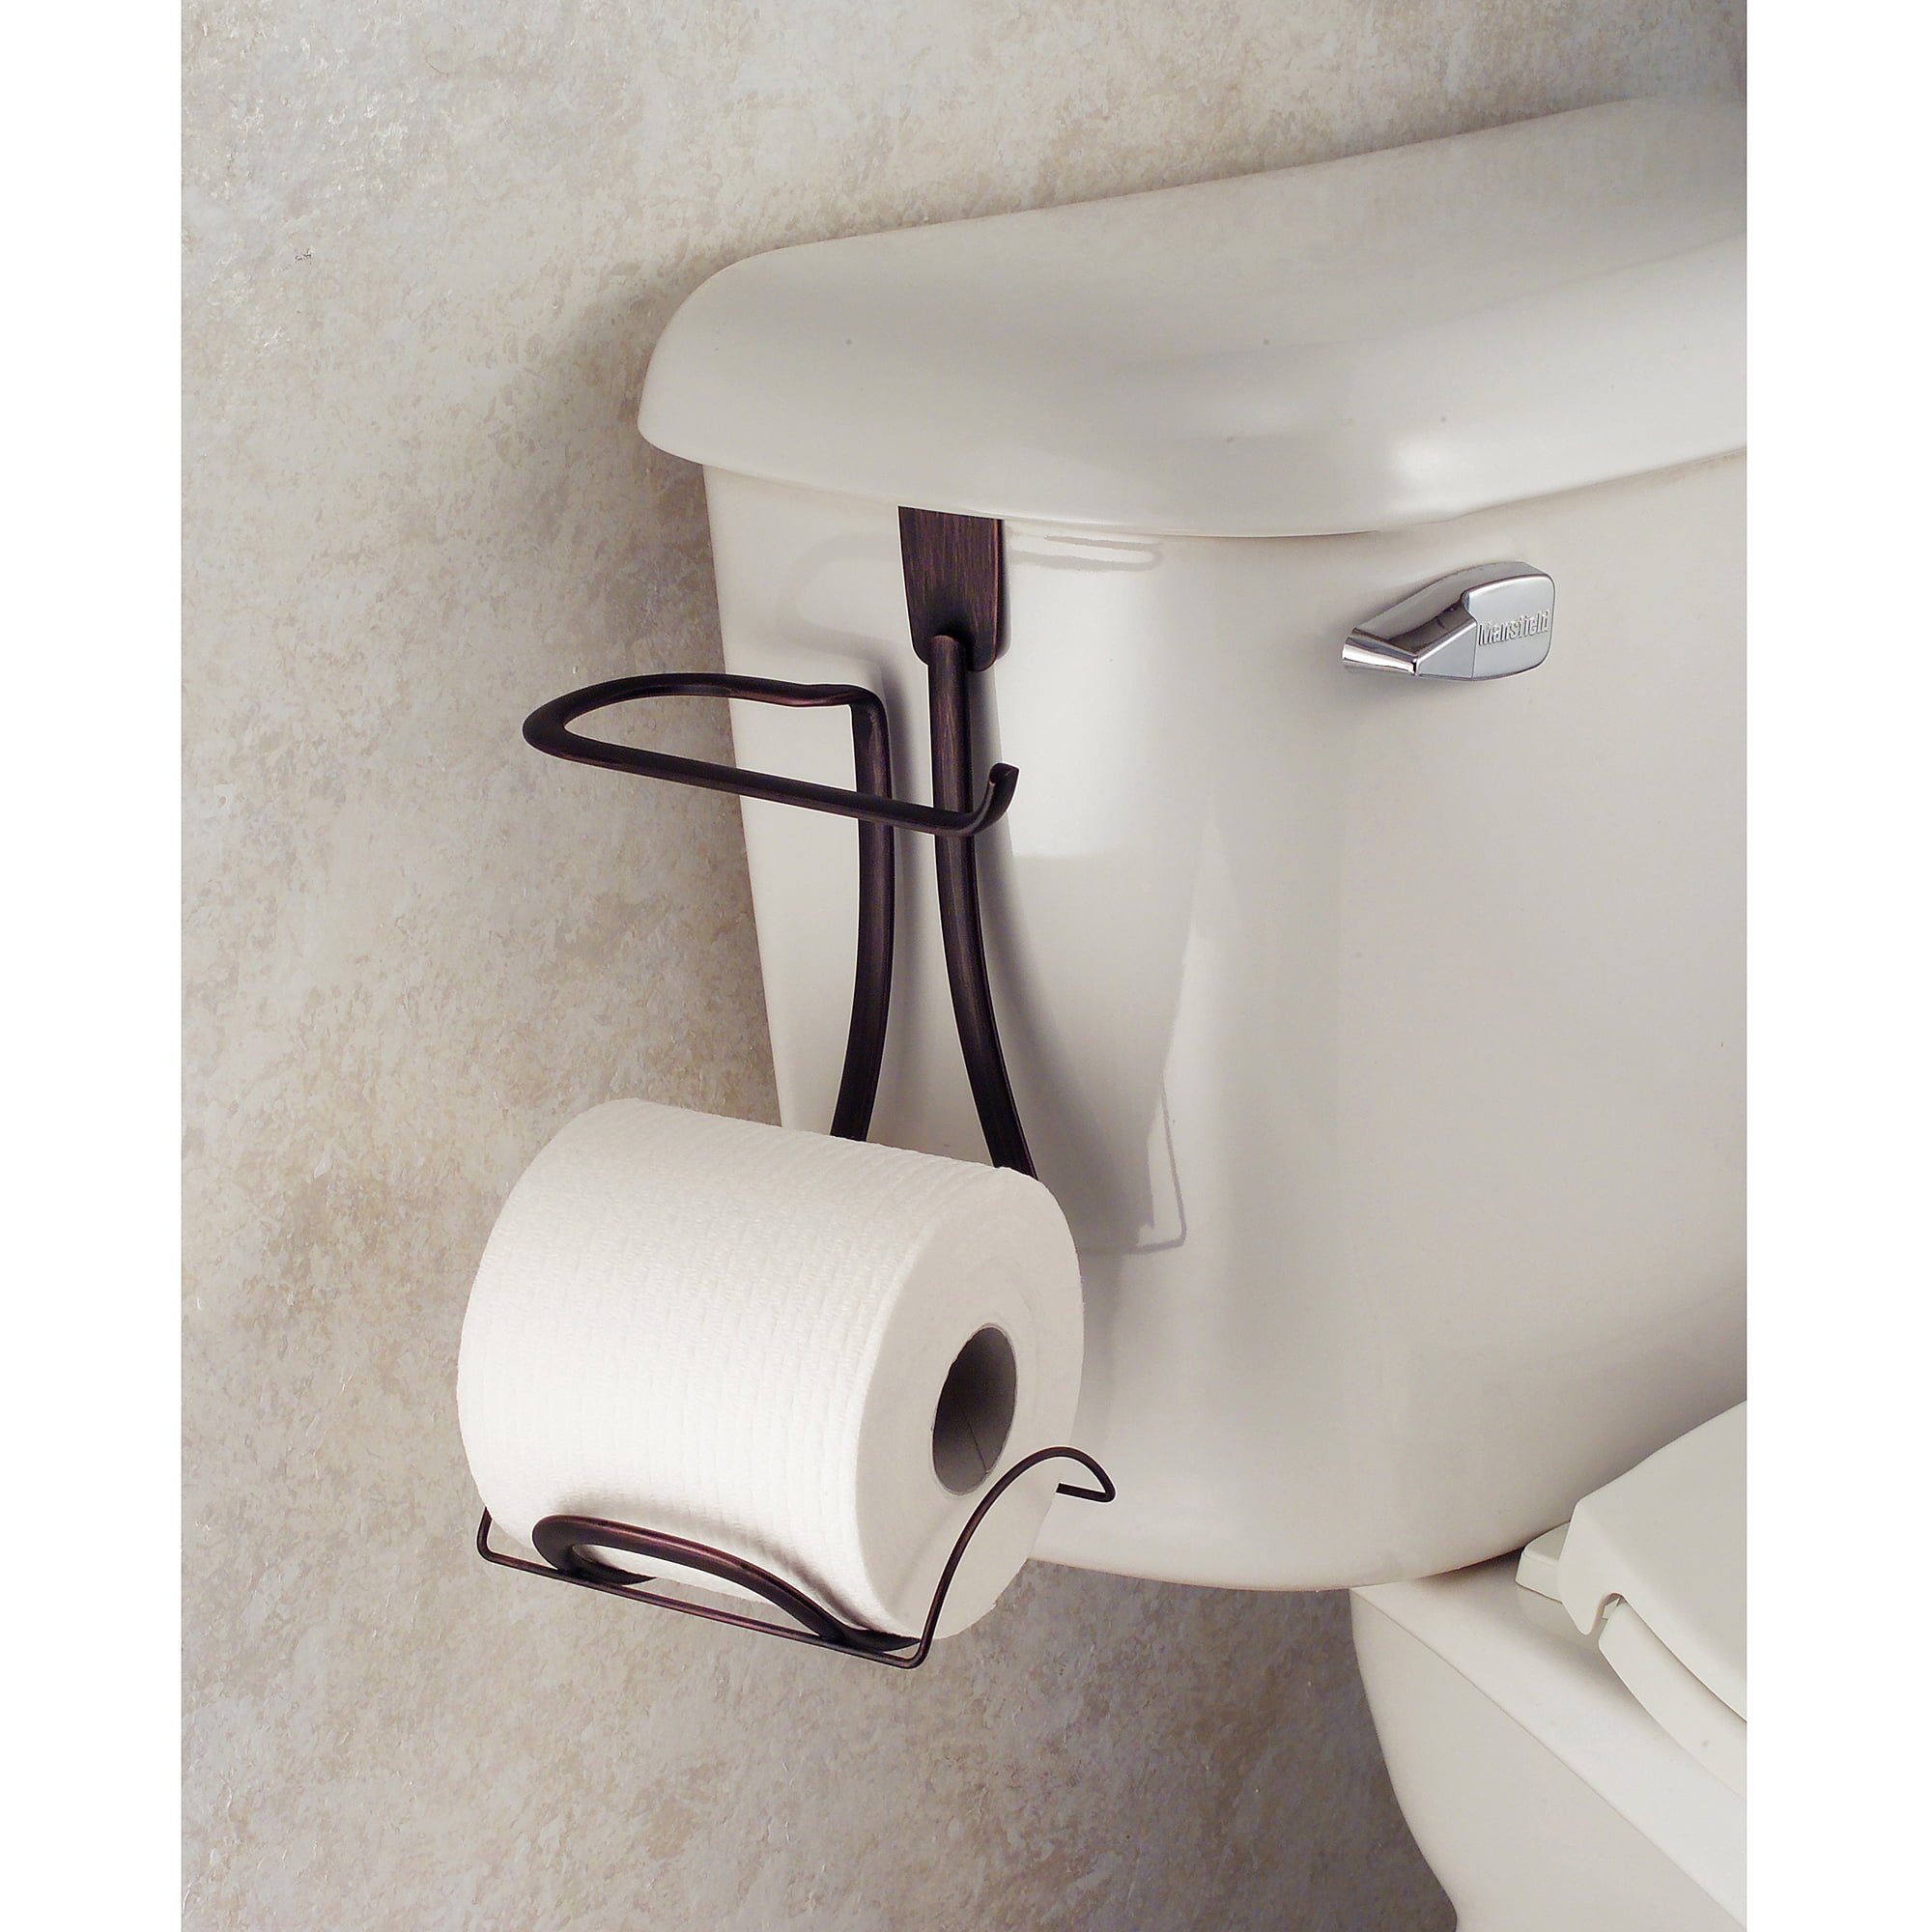 interdesign axis toilet paper holder for bathroom storage over the tank bronze walmartcom